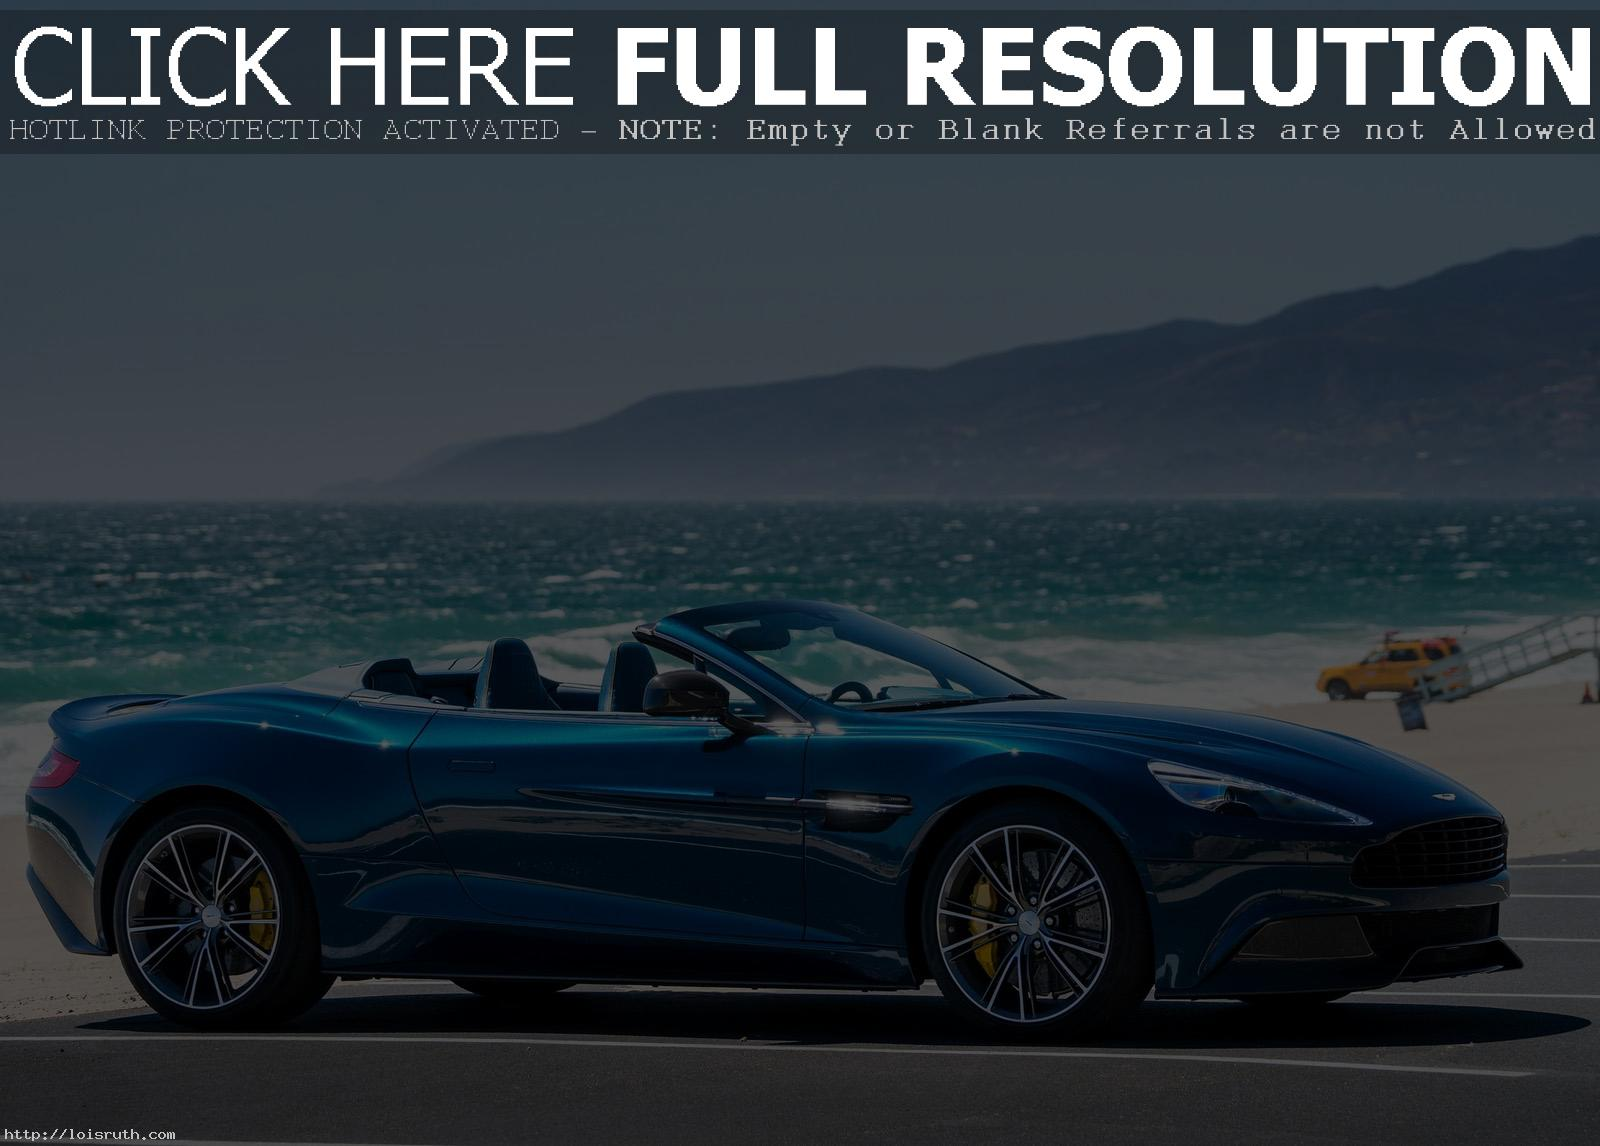 aston martin db9 voltane 2016 images